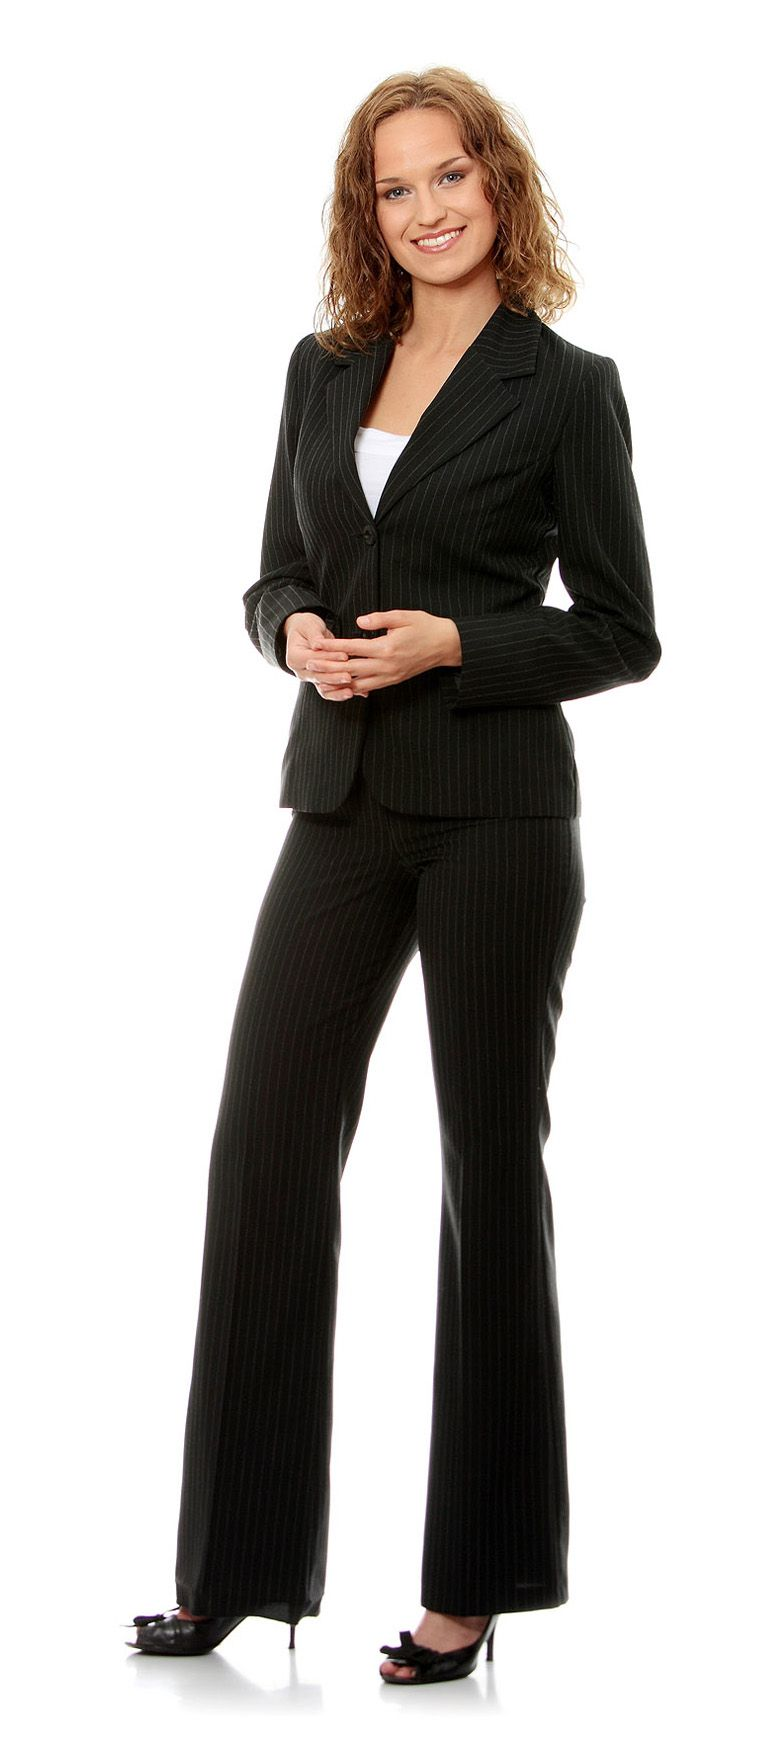 business professional attire for women  business